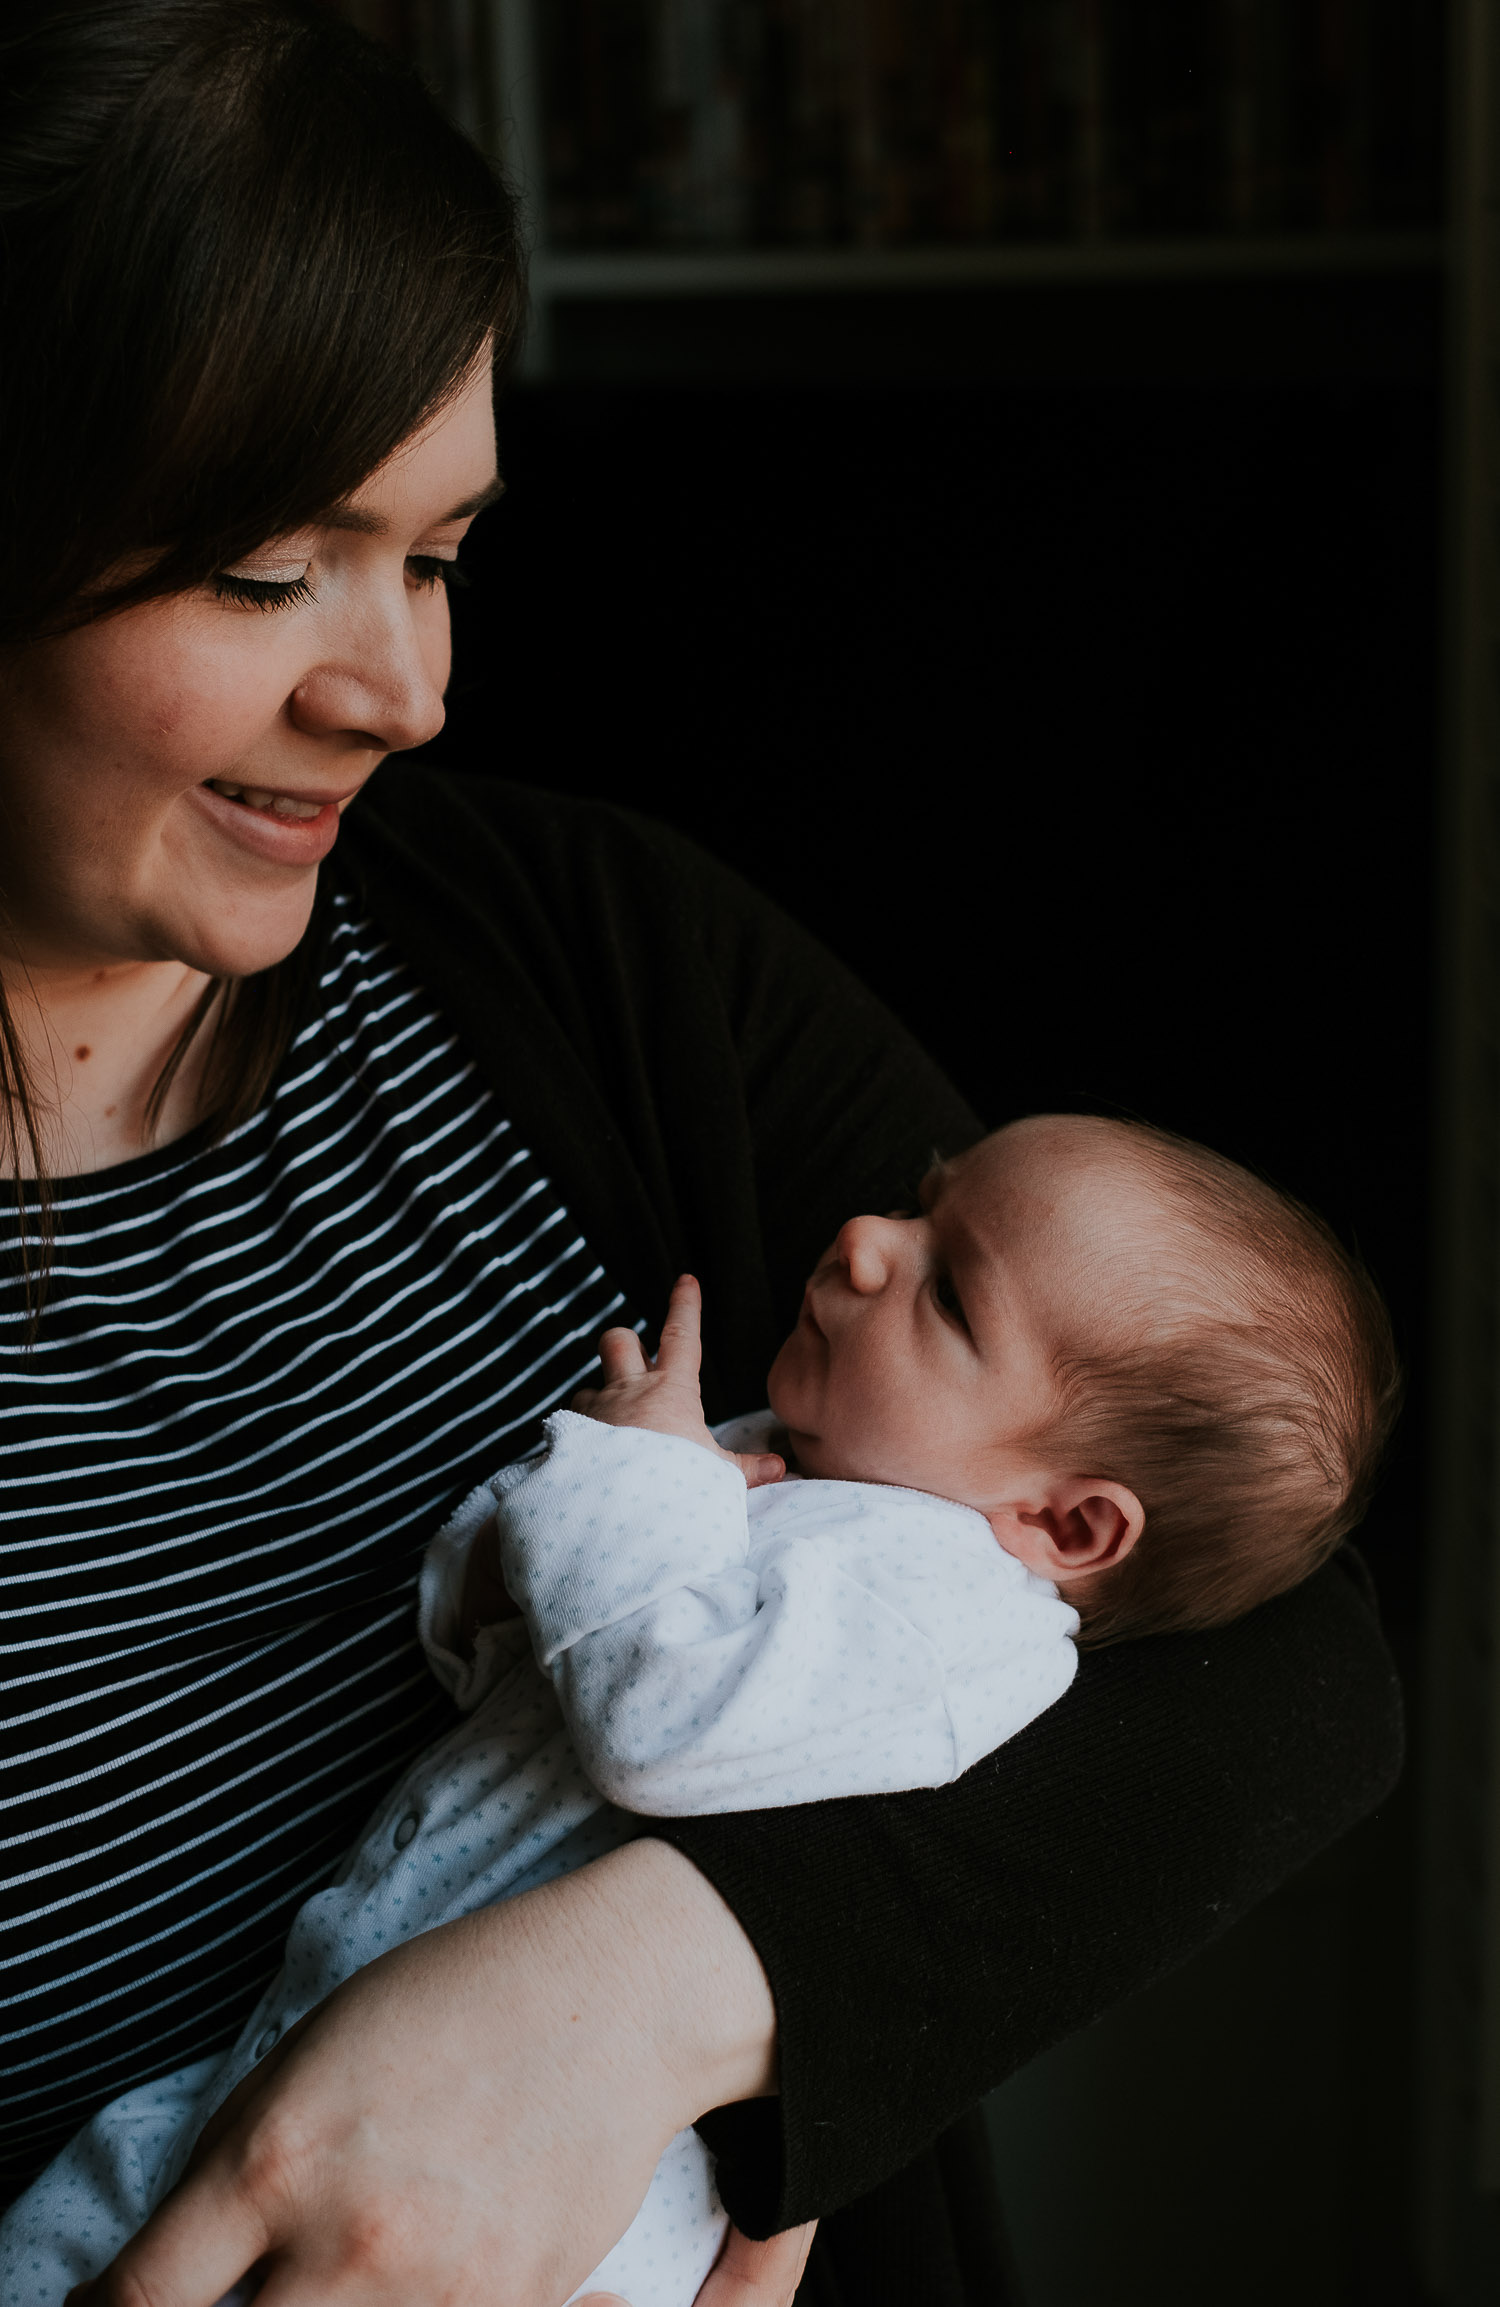 tunbridge wells baby photographer newborn simple portrait mother and newborn